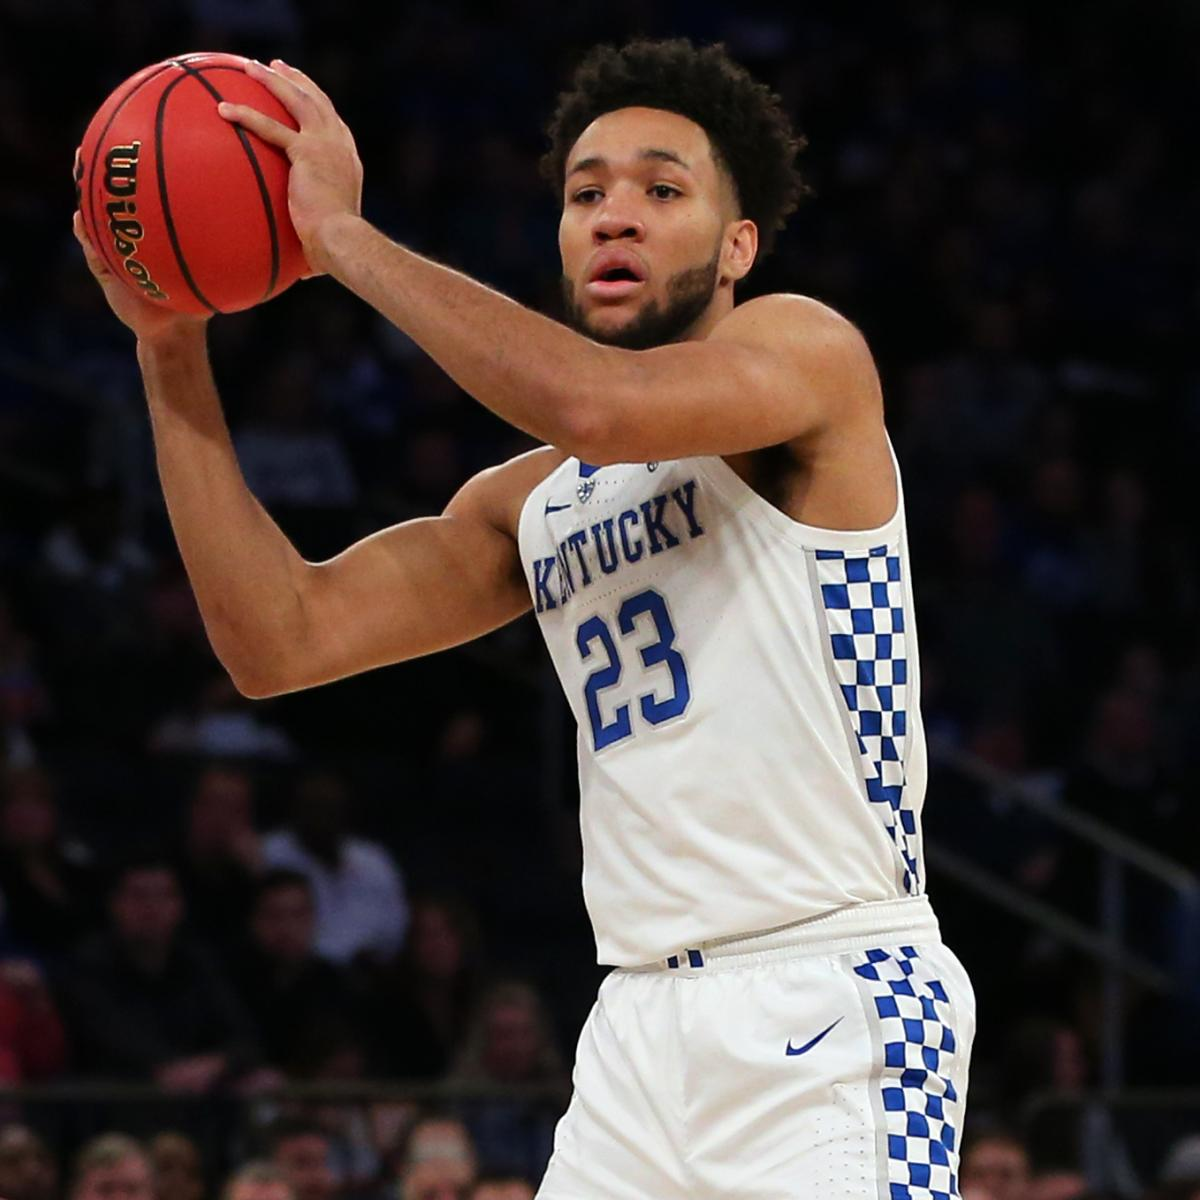 Kentucky's EJ Montgomery Declares For 2019 NBA Draft